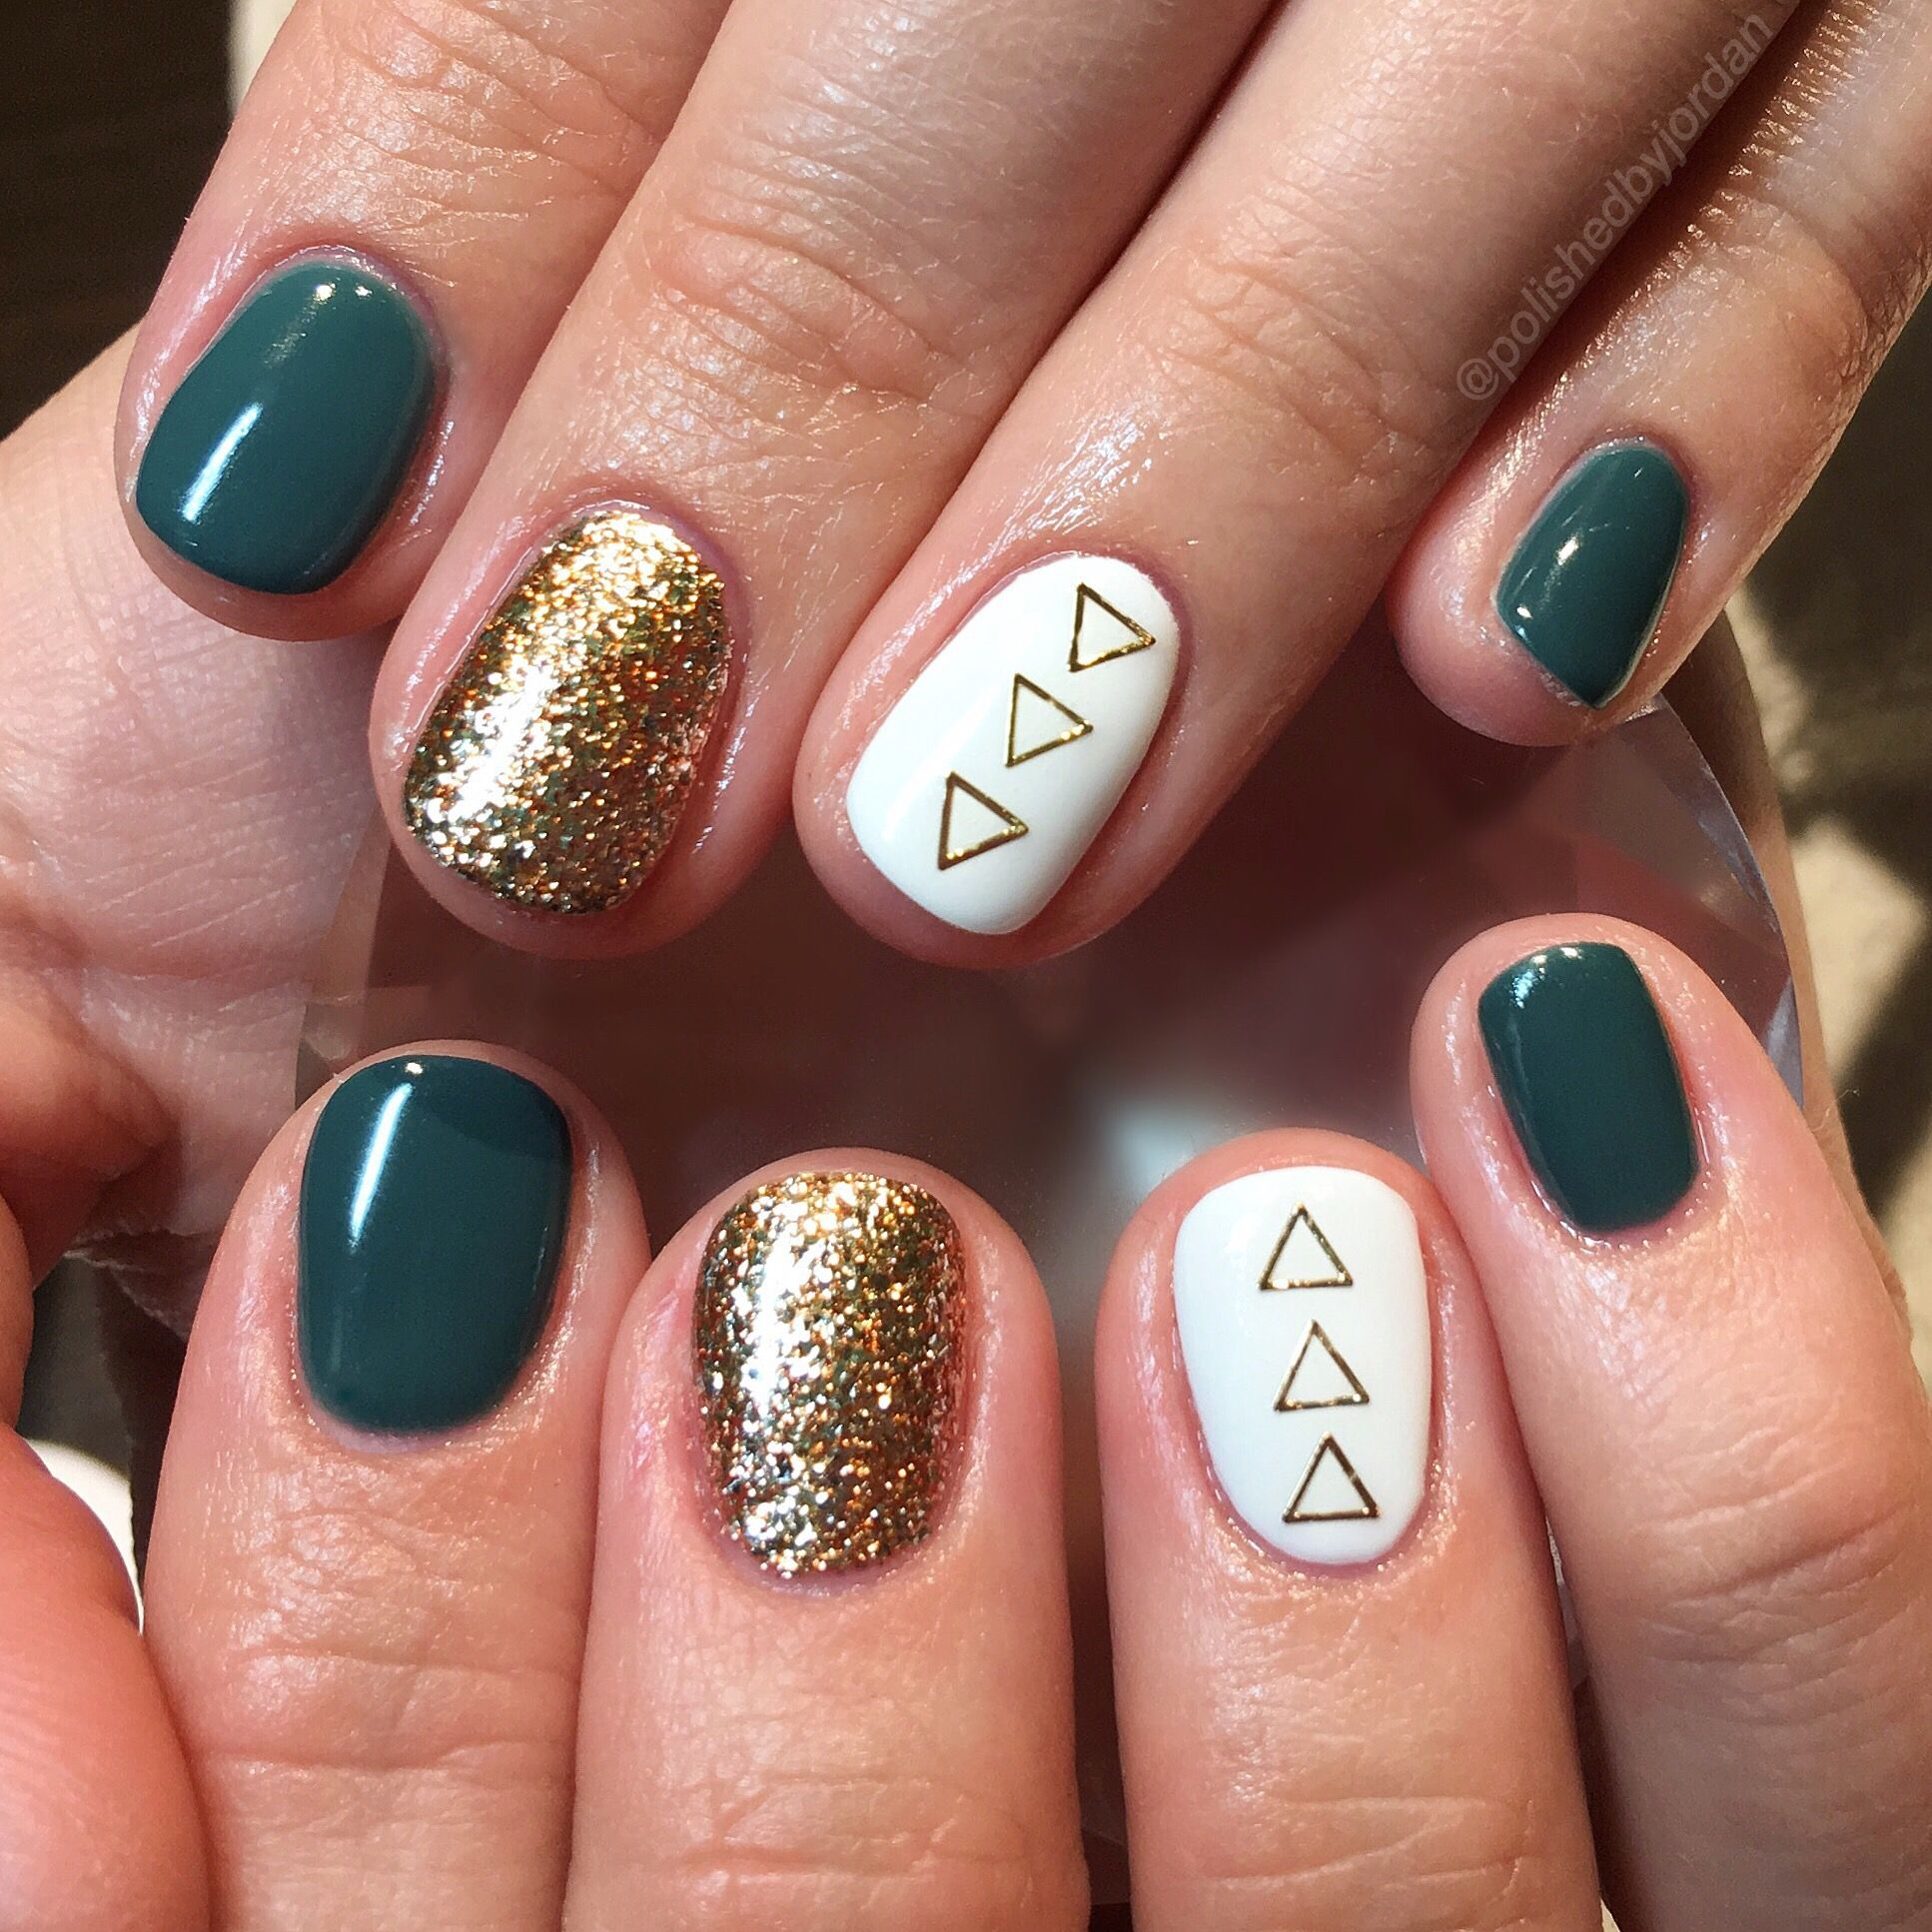 i would change this up to red, silver and black. fall nails